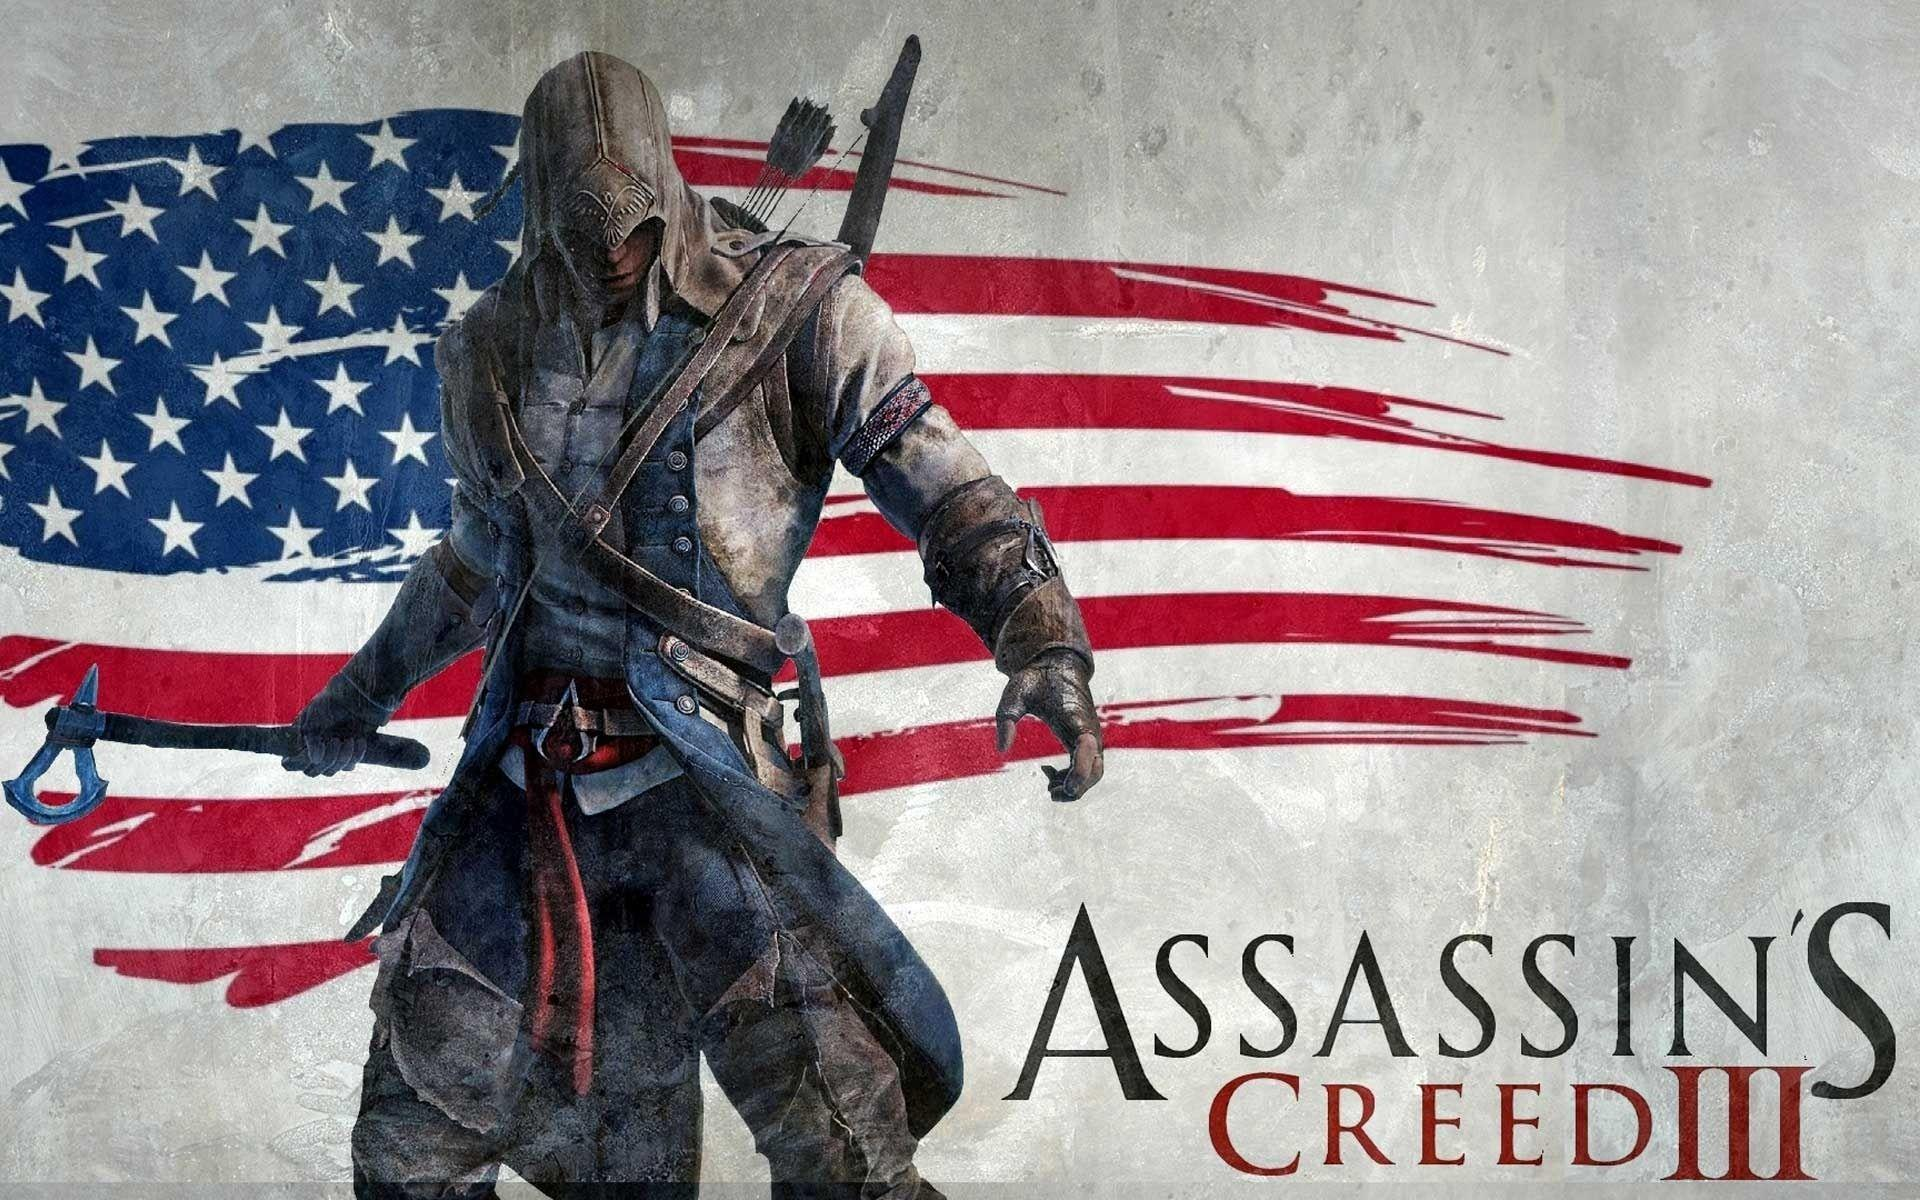 Assassins Creed 3 Game HD Wallpapers 15